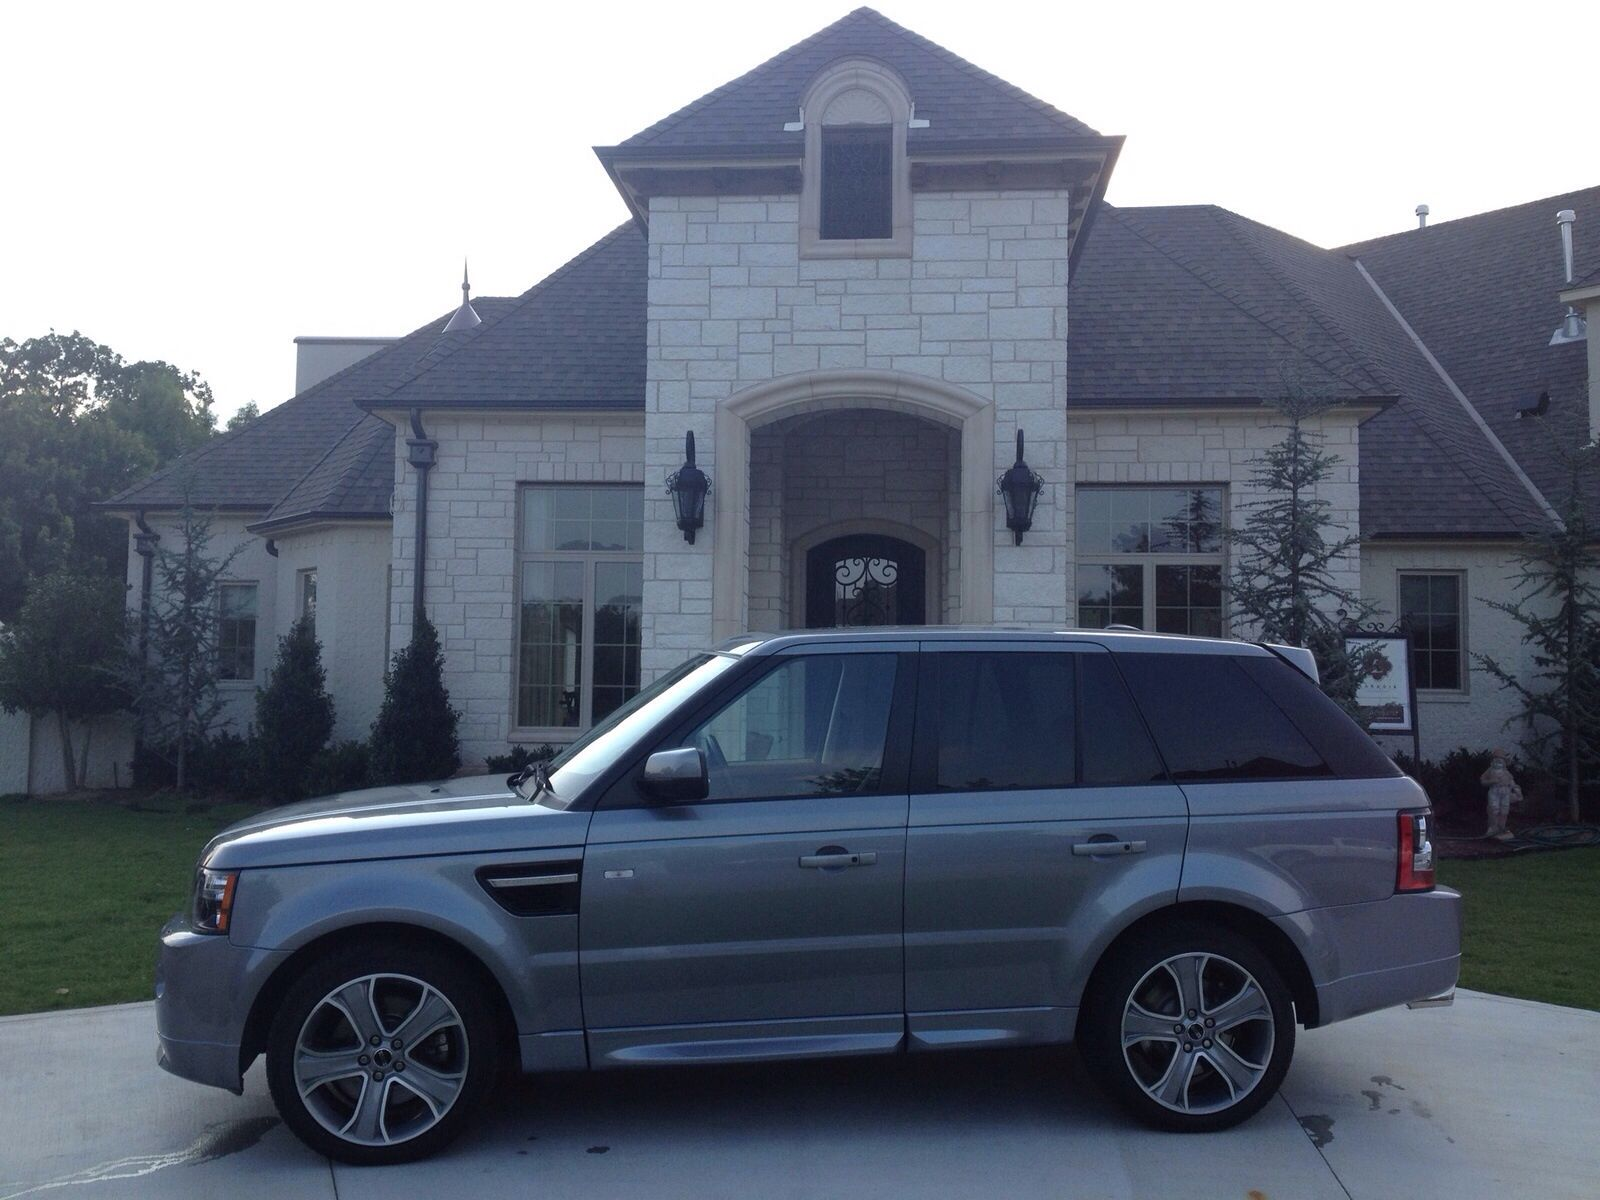 Range Rover House 45degreesdesign